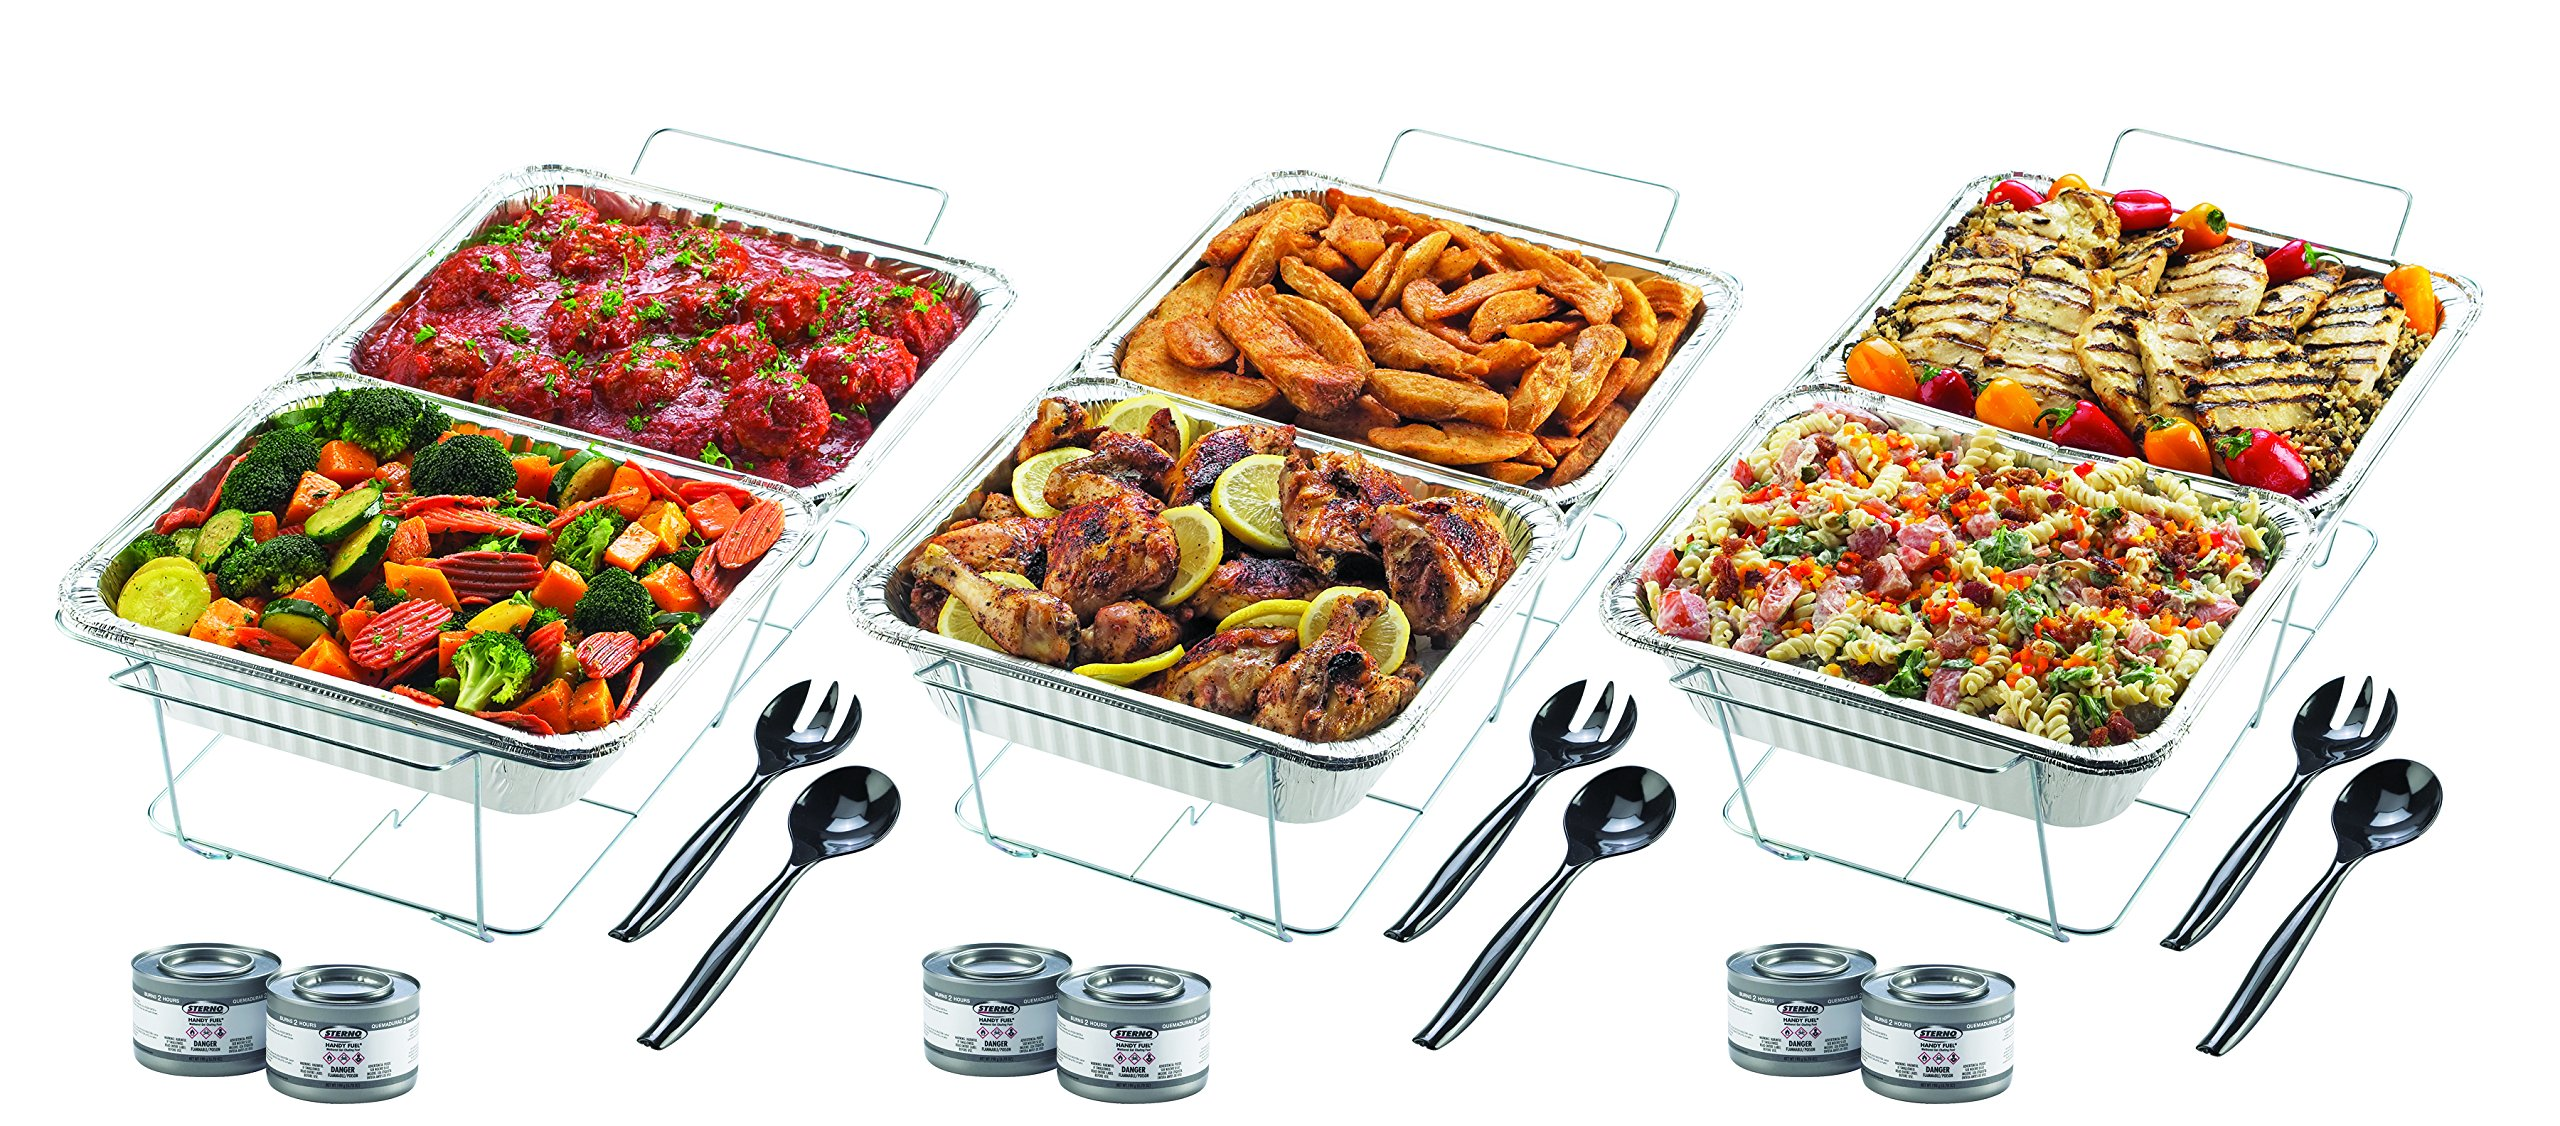 Sterno Products 24-Piece Disposable Party Set by Sterno (Image #2)